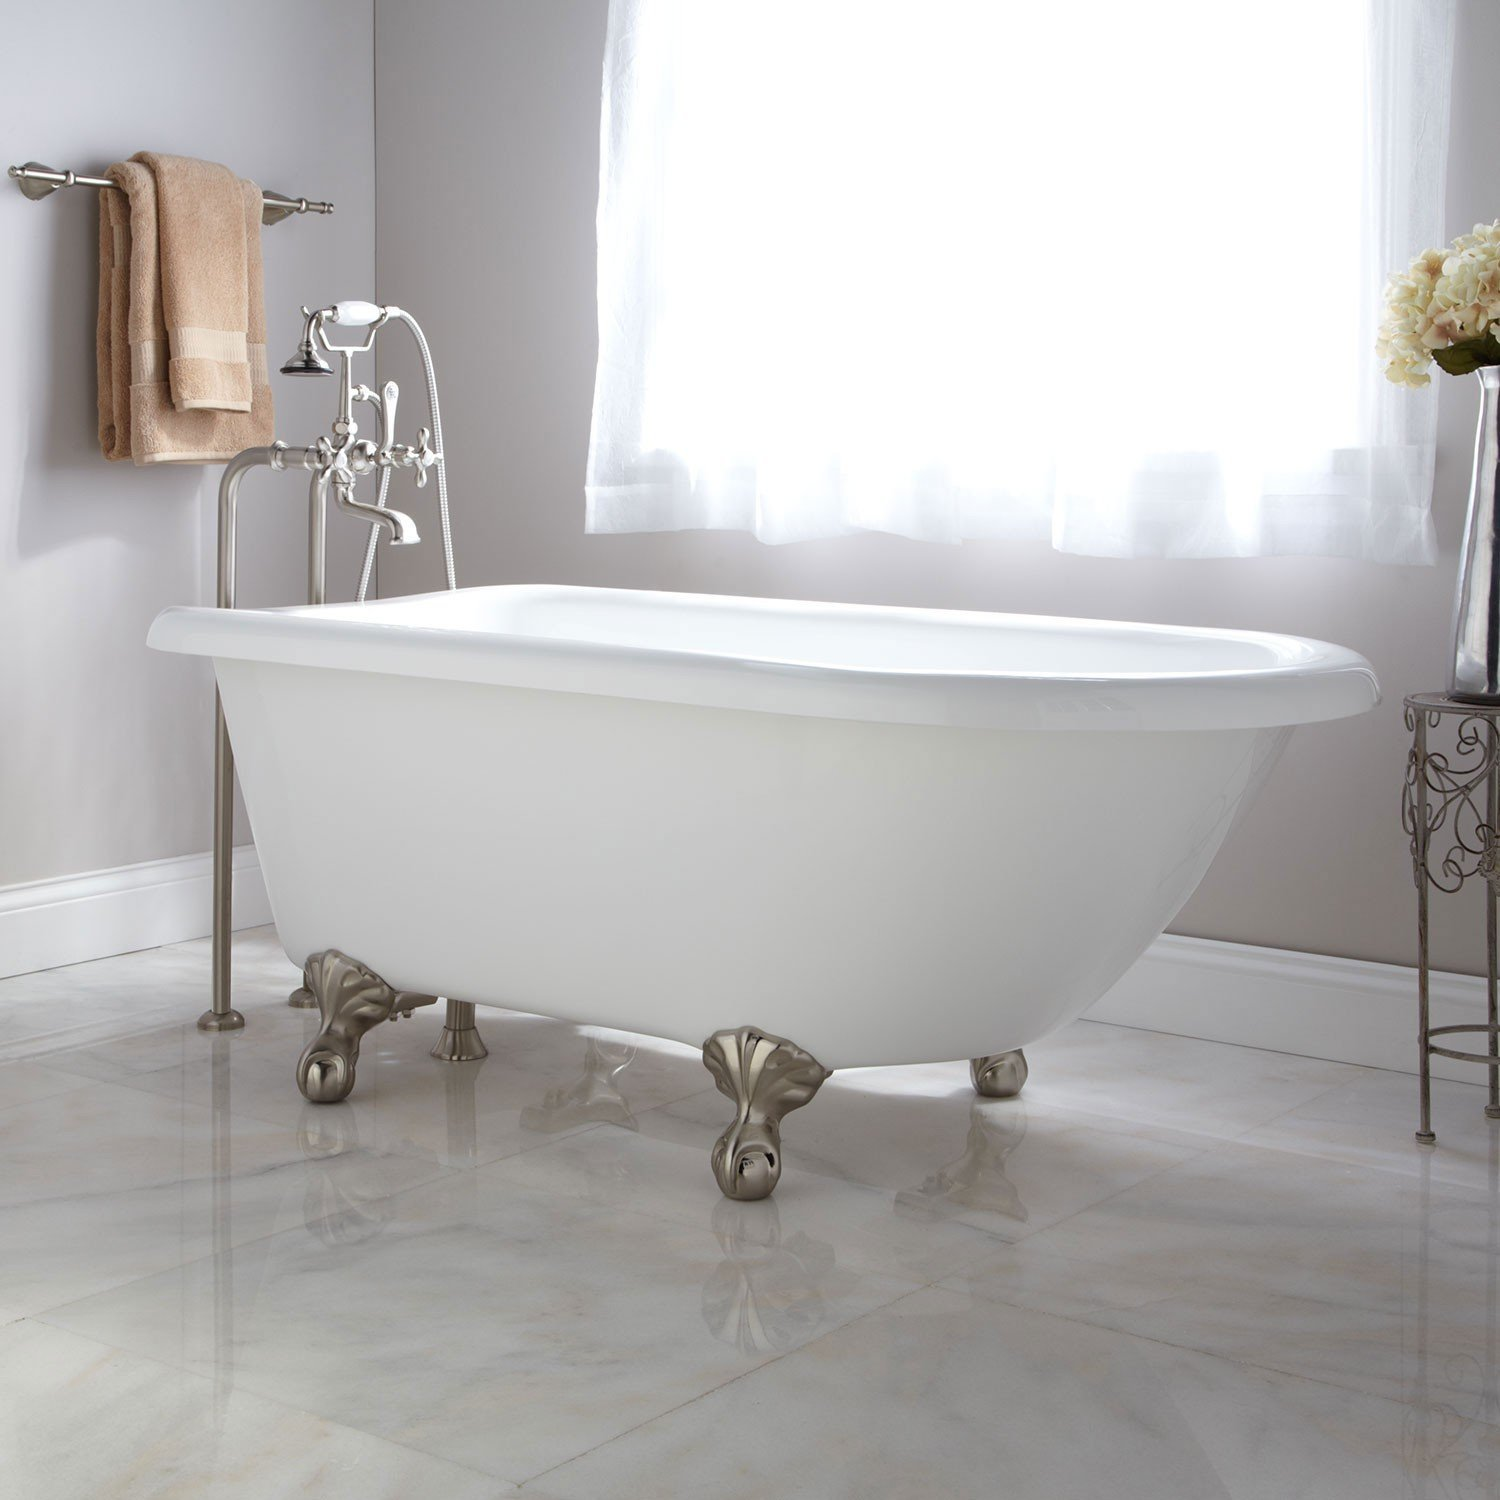 Charmant Naiture Acrylic Clawfoot Tub From SH